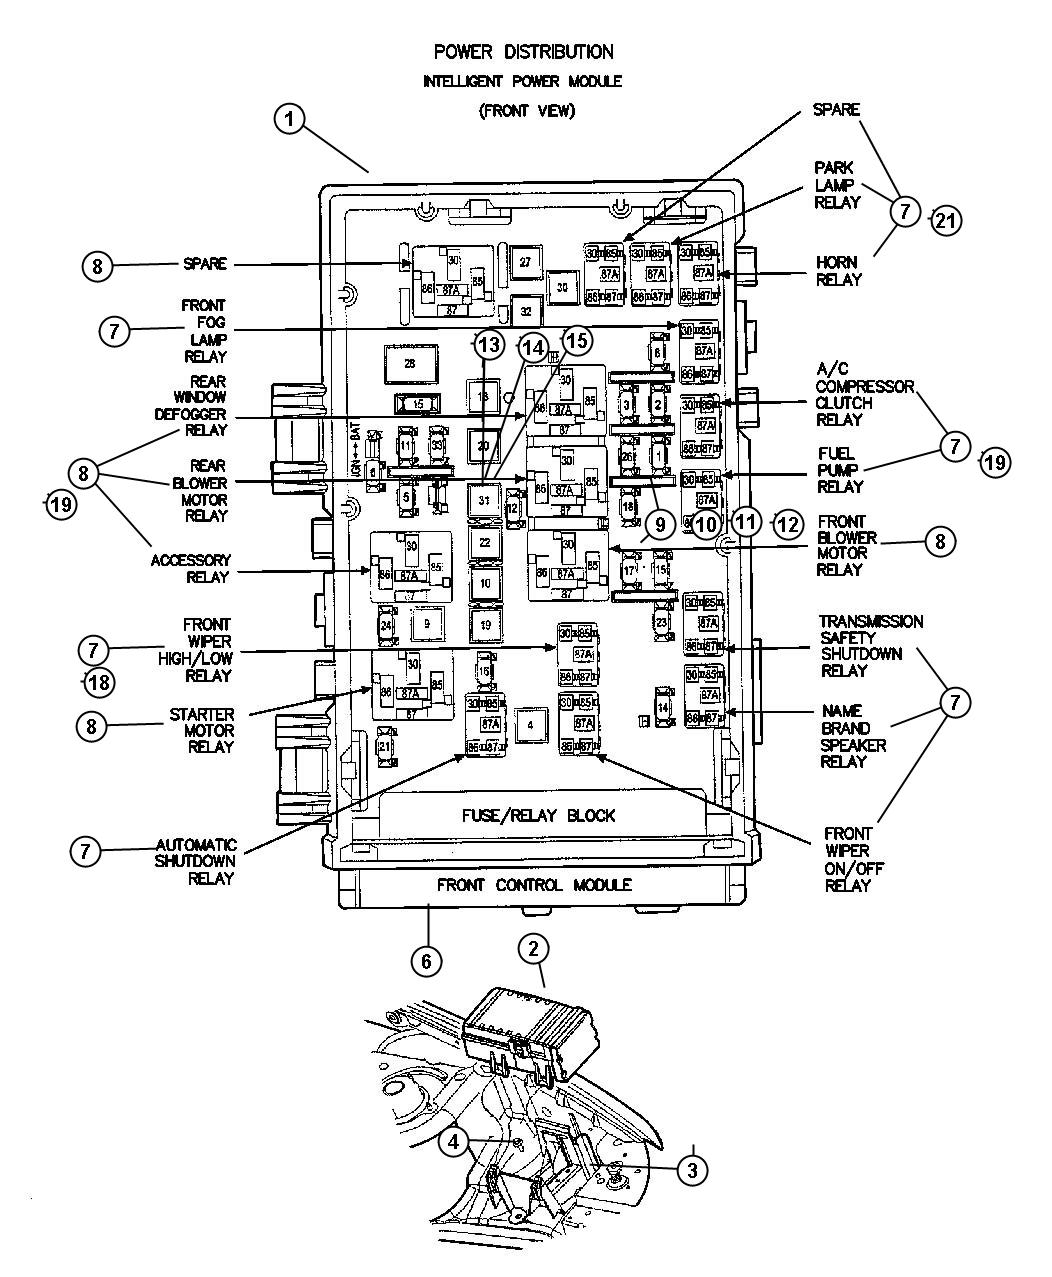 2005 Dodge Caravan Fuse Box Diagram, 2005, Get Free Image